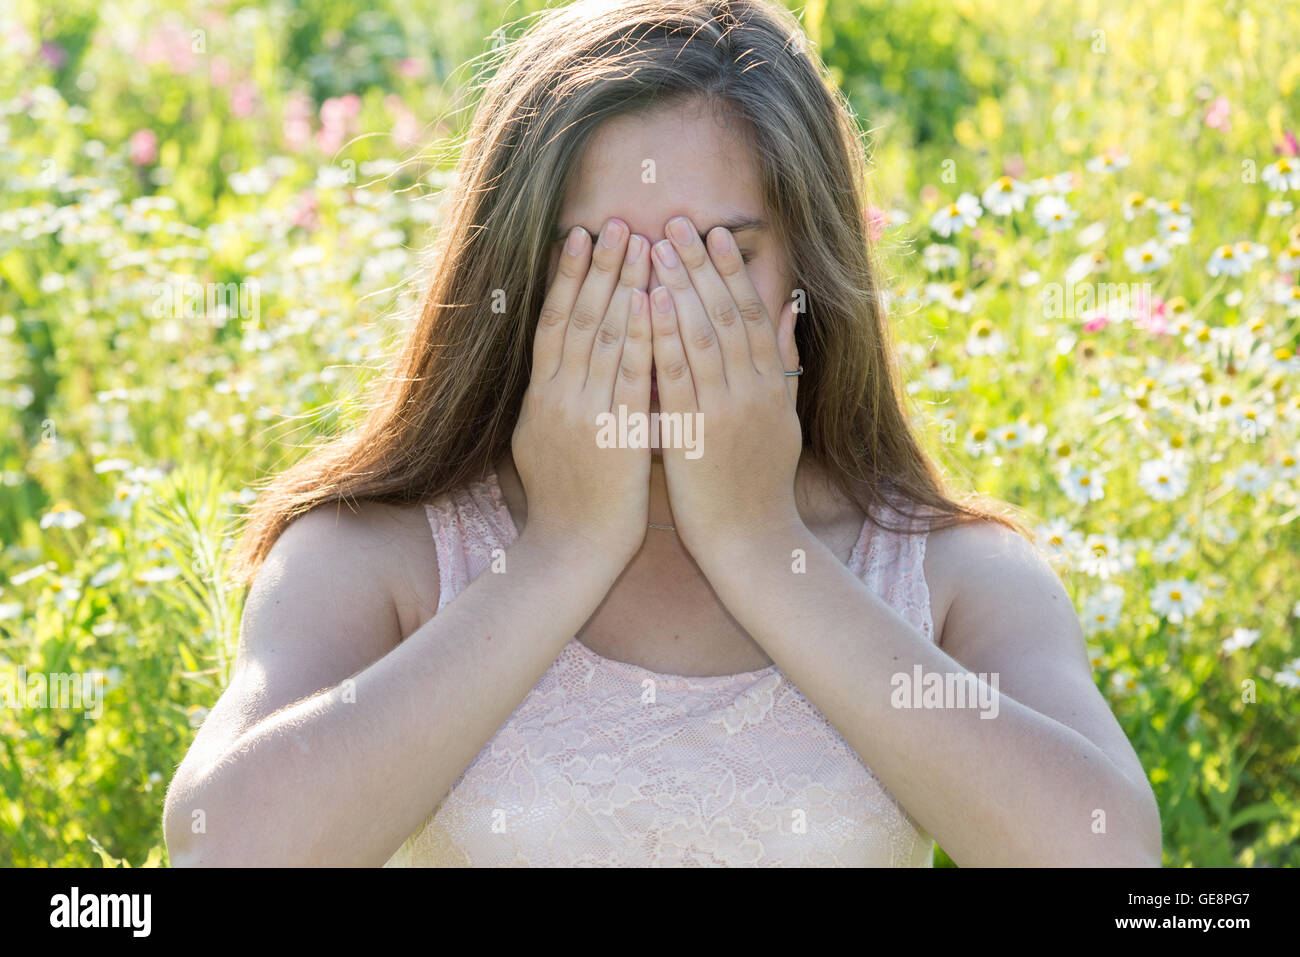 Sad girl covers face with her hands and weeps - Stock Image